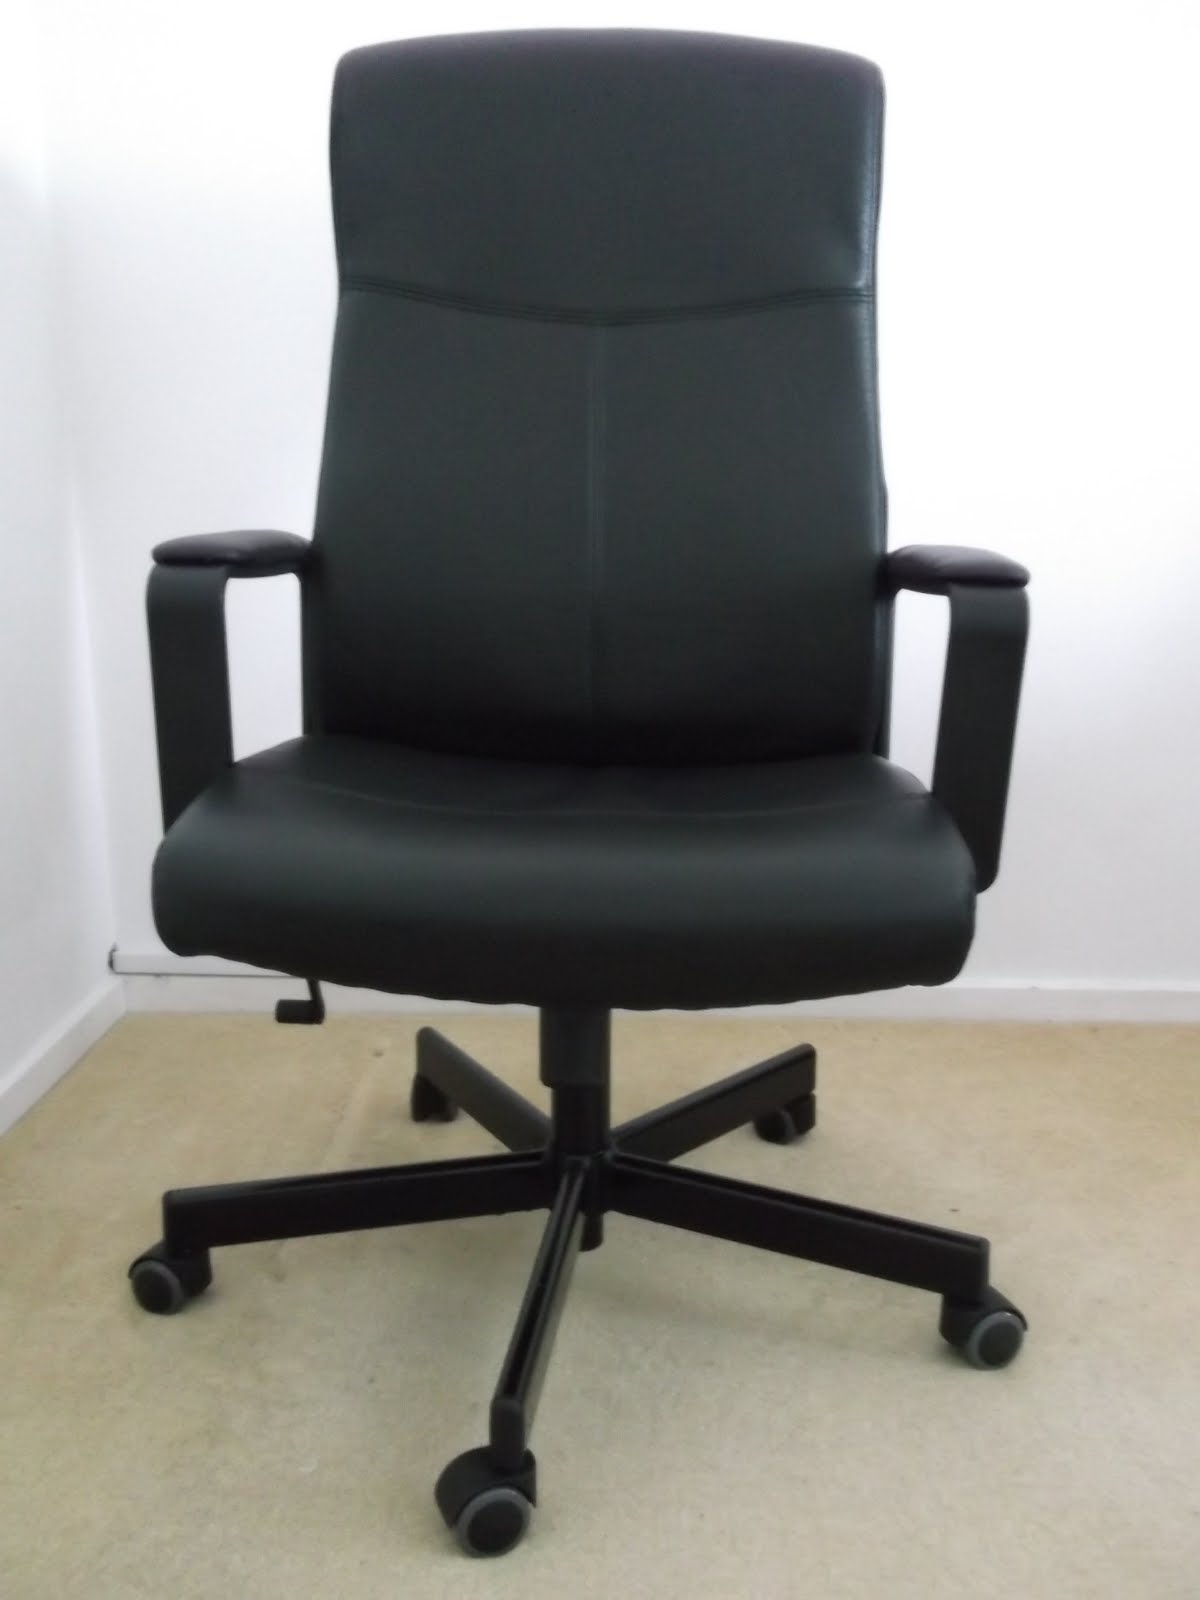 ikea chairs office. Ikea Chairs Office. Malkolm Office Swivel Chair E